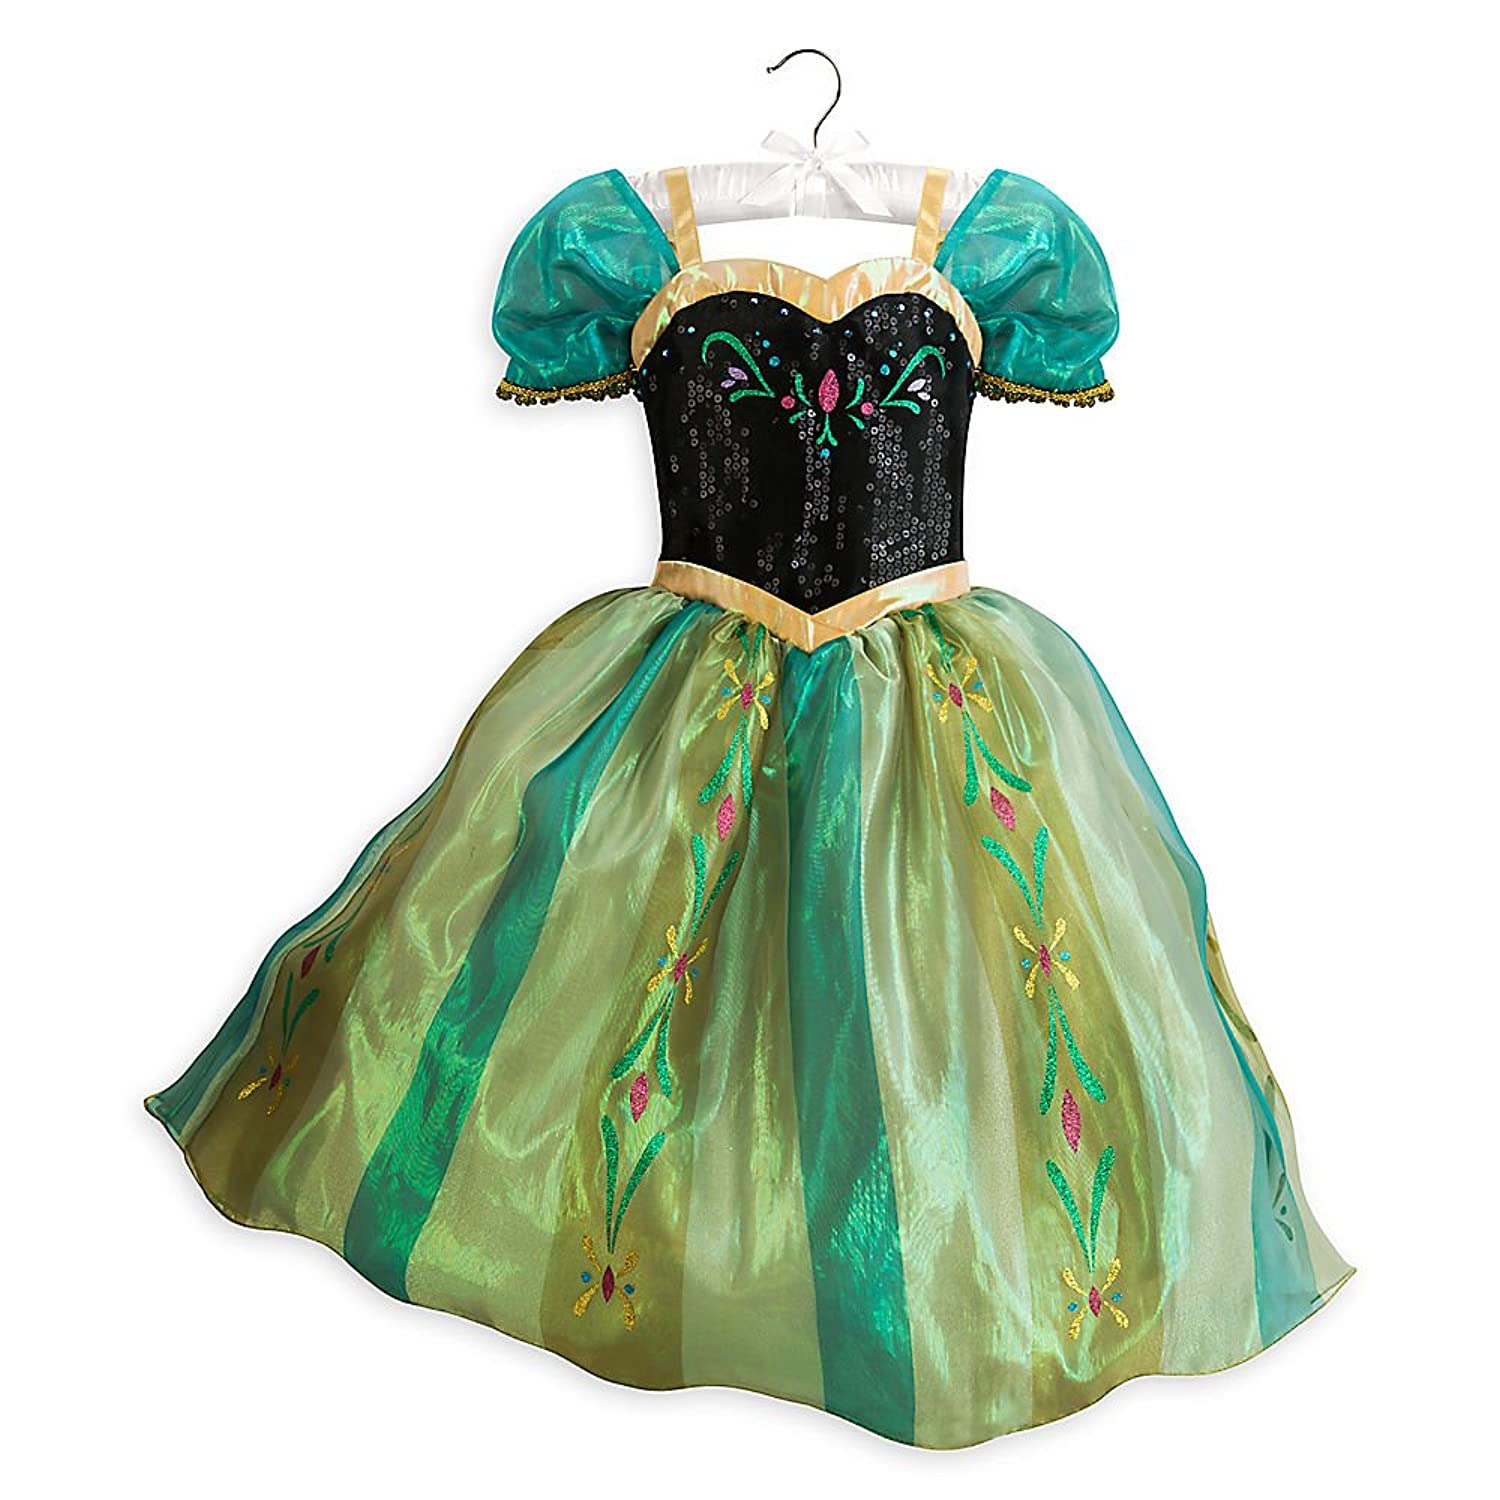 Amazon.com Disney Frozen Dress Up Anna Costume for Girls Kids Coronation Princess (Size 9/10) Clothing  sc 1 st  Amazon.com & Amazon.com: Disney Frozen Dress Up Anna Costume for Girls Kids ...